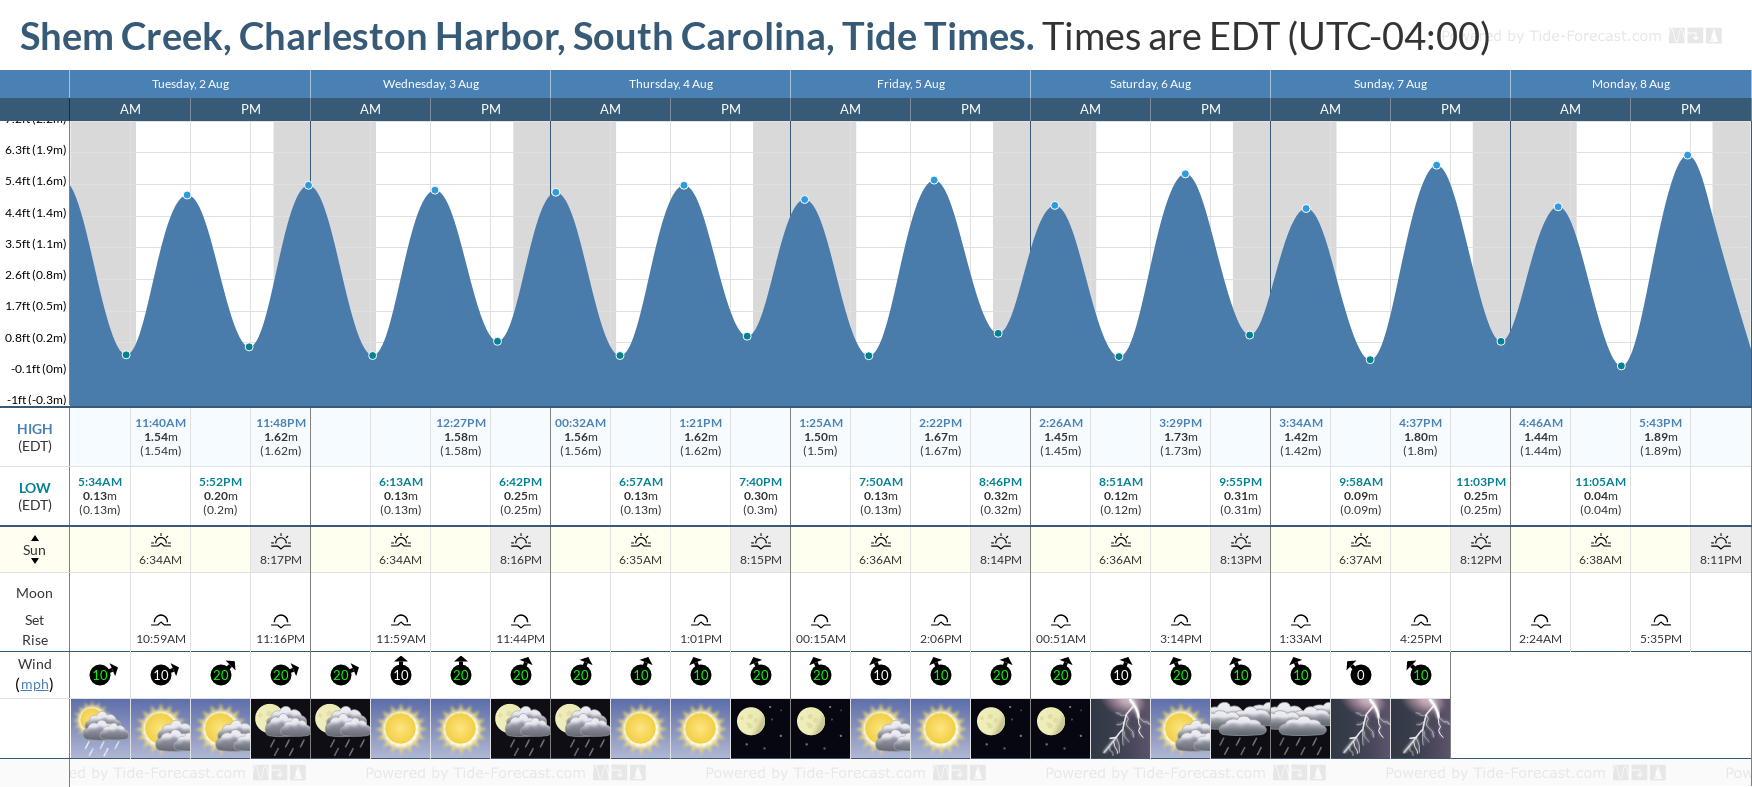 Shem Creek, Charleston Harbor, South Carolina Tide Chart including high and low tide tide times for the next 7 days